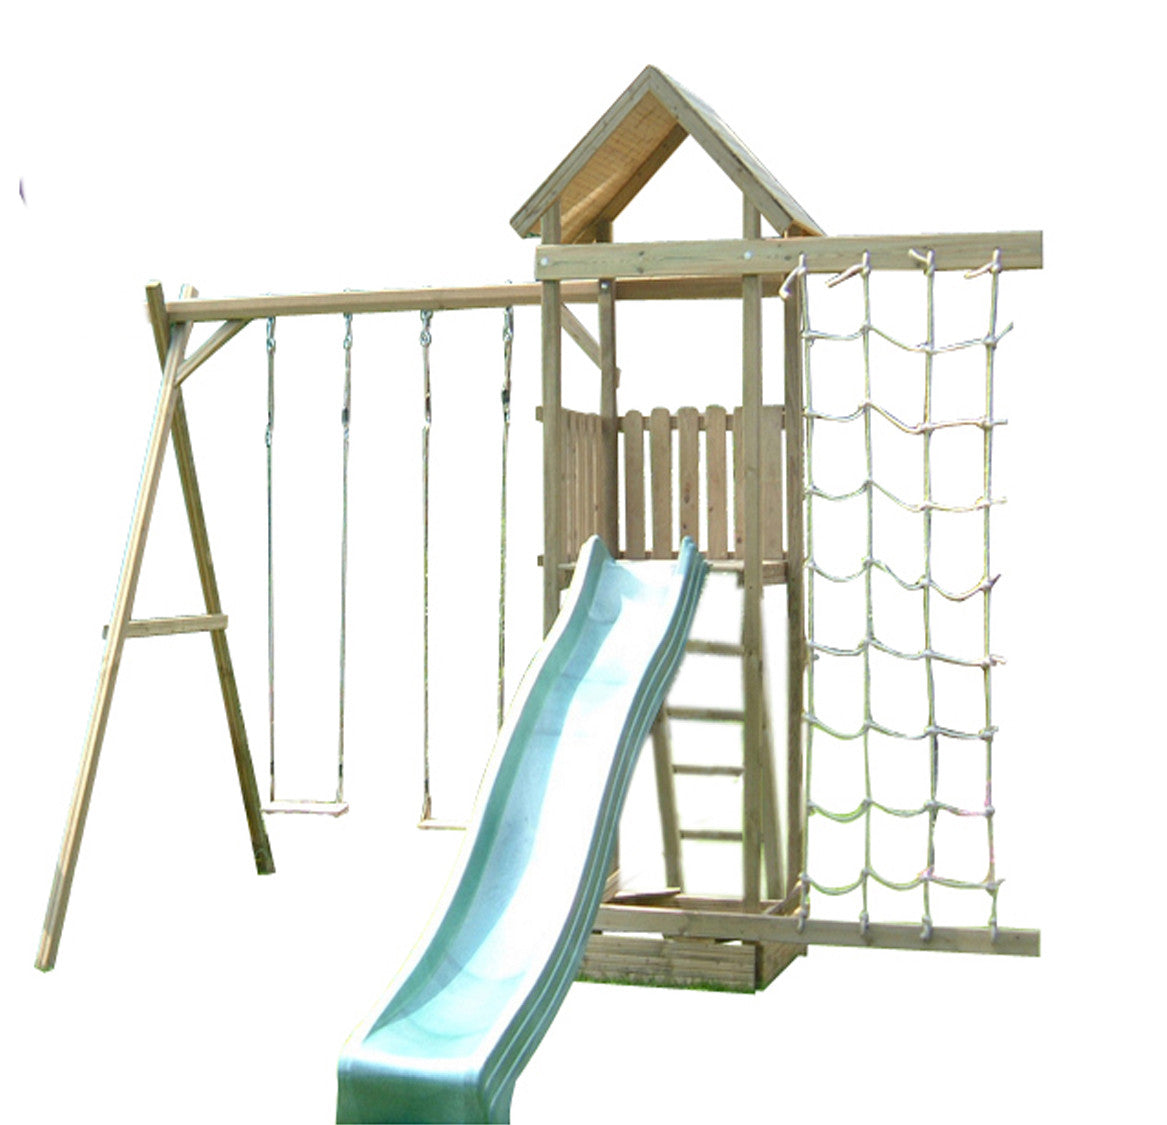 Action Arundel 1.5m Wooden Climbing Frame Tower with Swings and ...